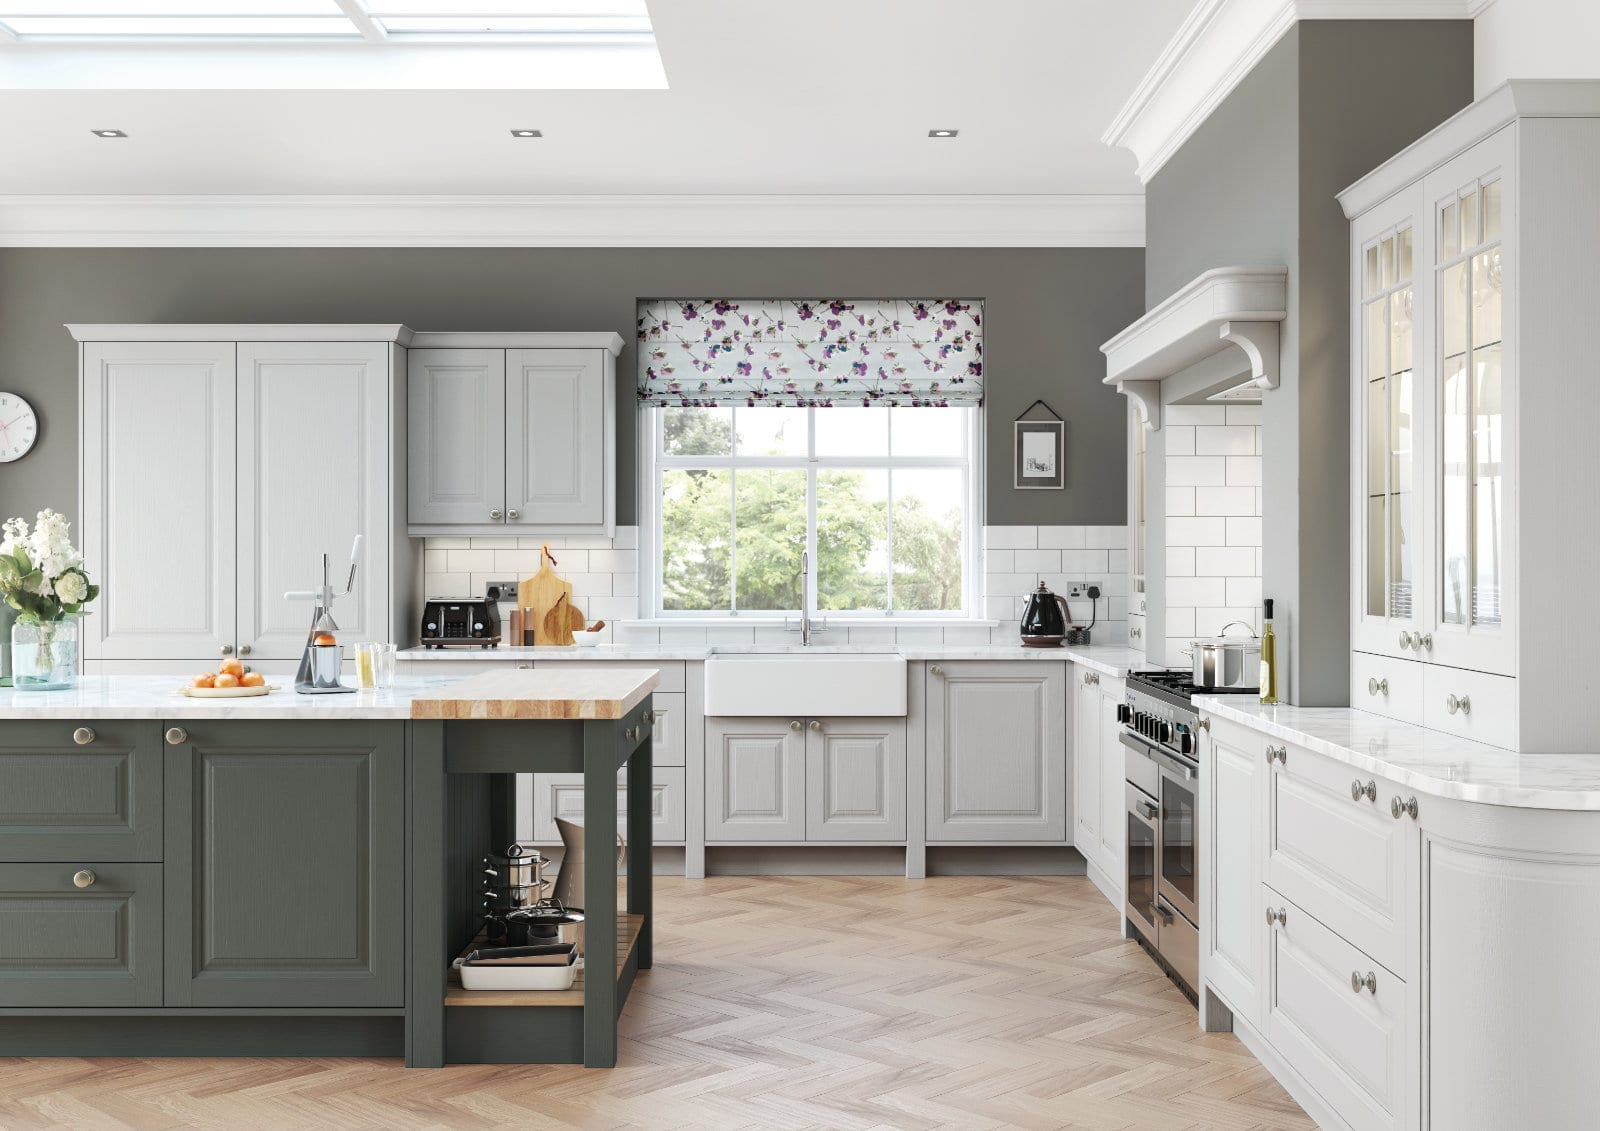 Alku White Grey Open Plan U Shaped Kitchen With Island 2 | Unique Bedrooms Direct | Dunstable